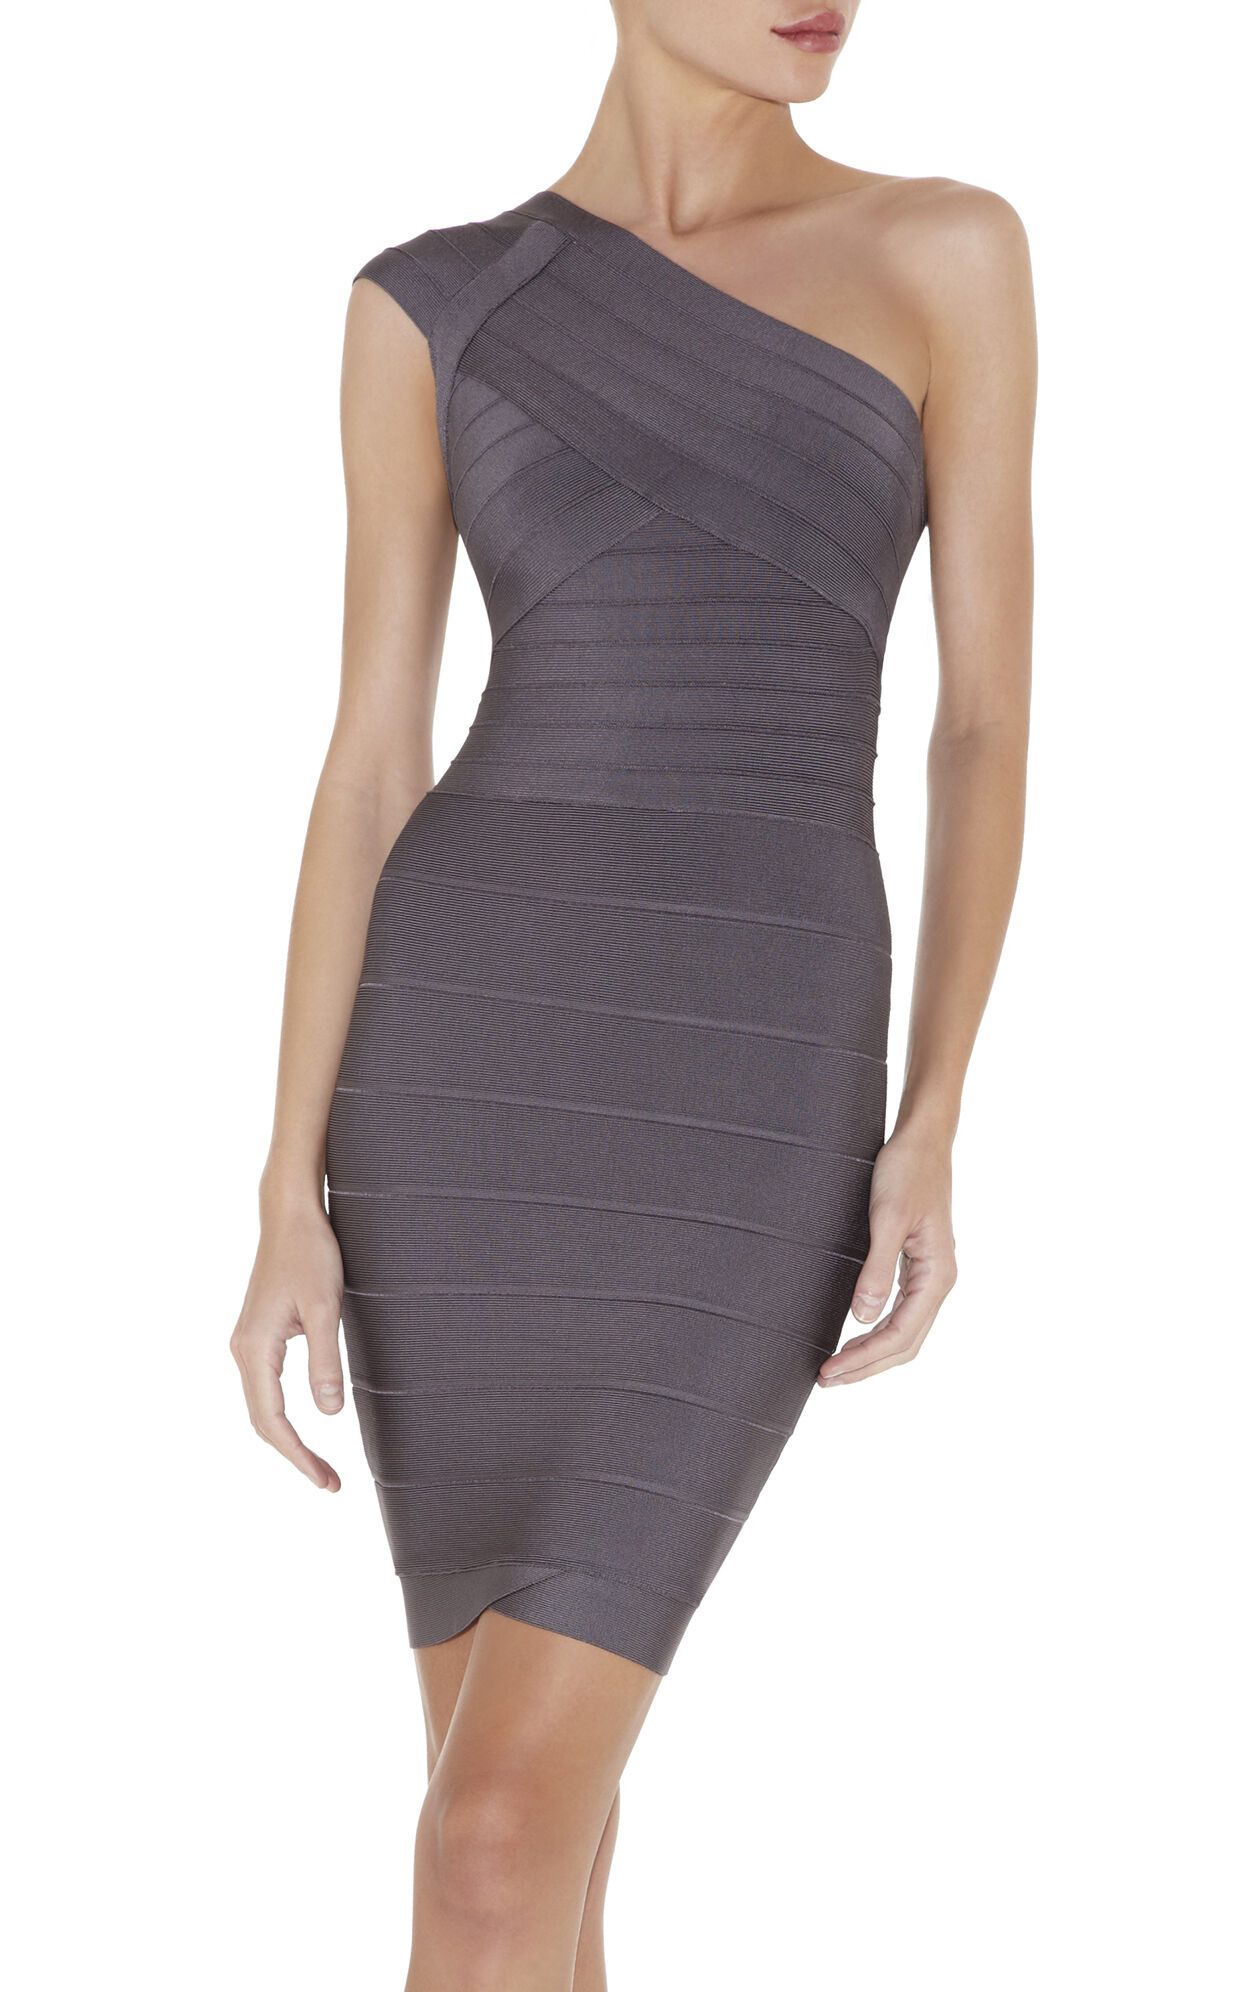 Jessamine Signature One-Shoulder Bandage Dress